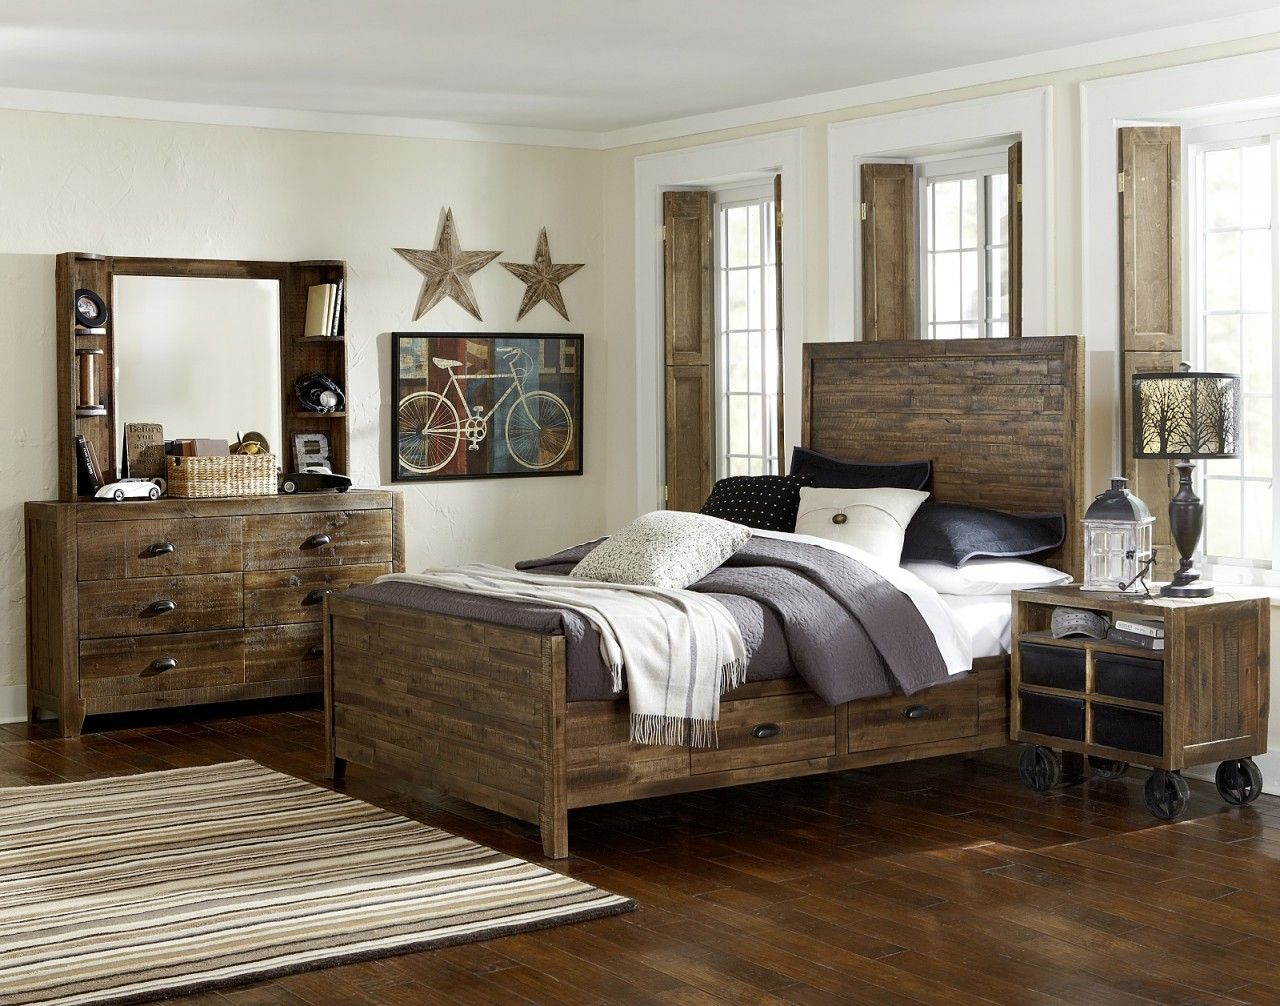 Magnussen Furniture Braxton Panel Bedroom Set With Storage Rails Extraordinary Twin Bedroom Sets Decorating Inspiration